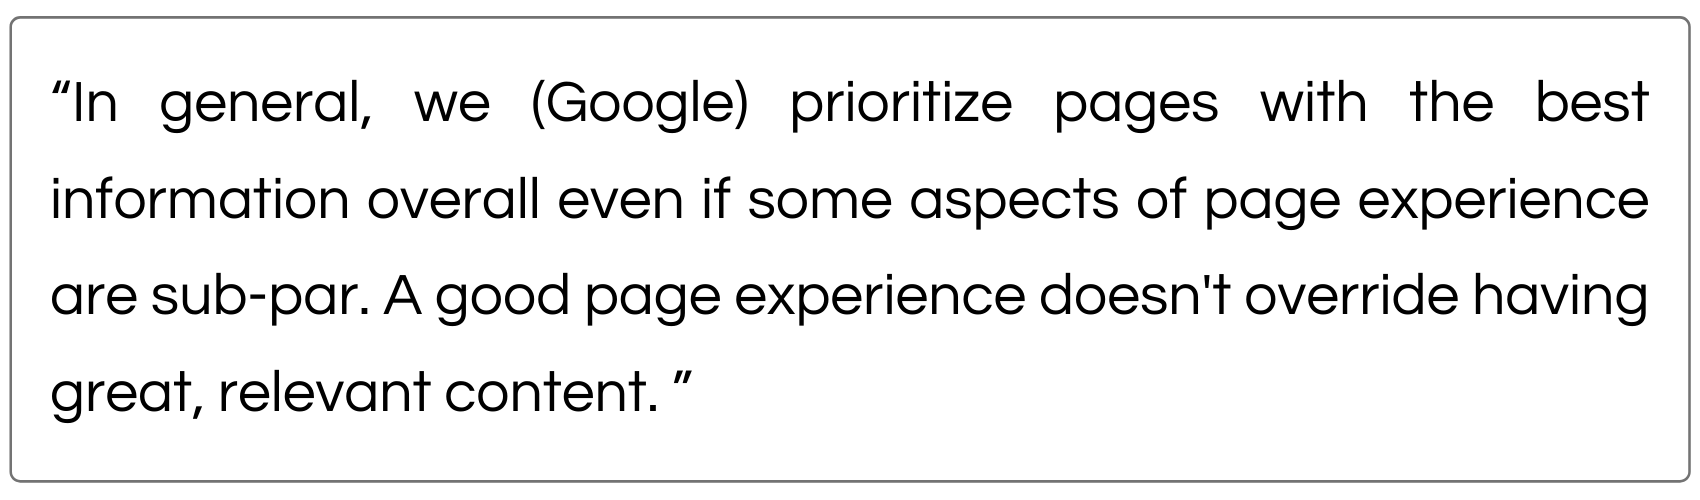 Google Quote about SEO and Core Web Vitals